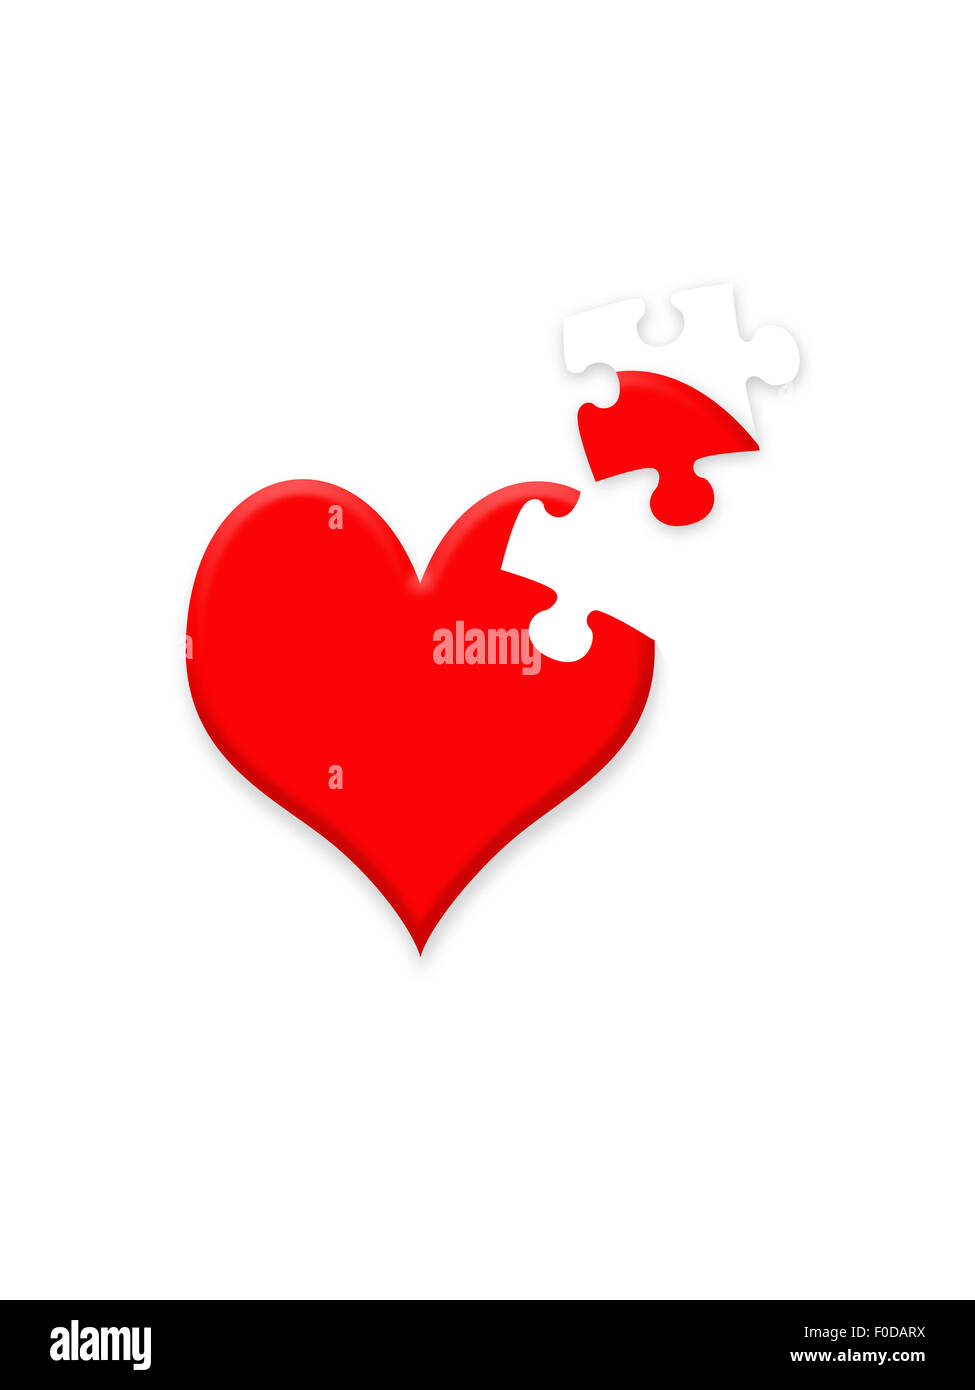 Valentine illustration showing heart with missing jigsaw piece - Stock Image